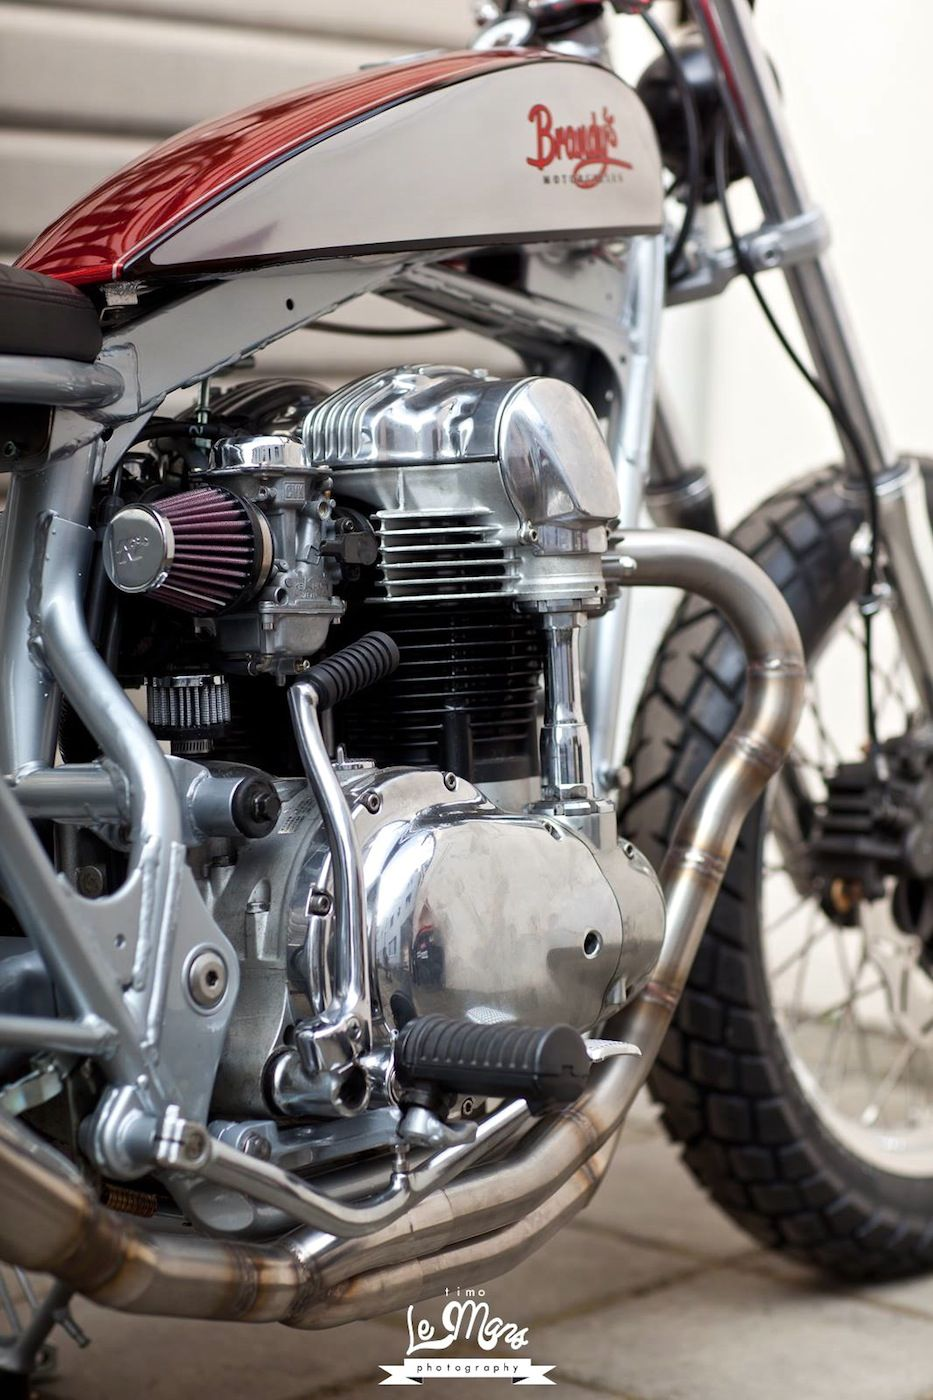 For Motorcycle fans: W650 Dirt Racer Click to read the story behind